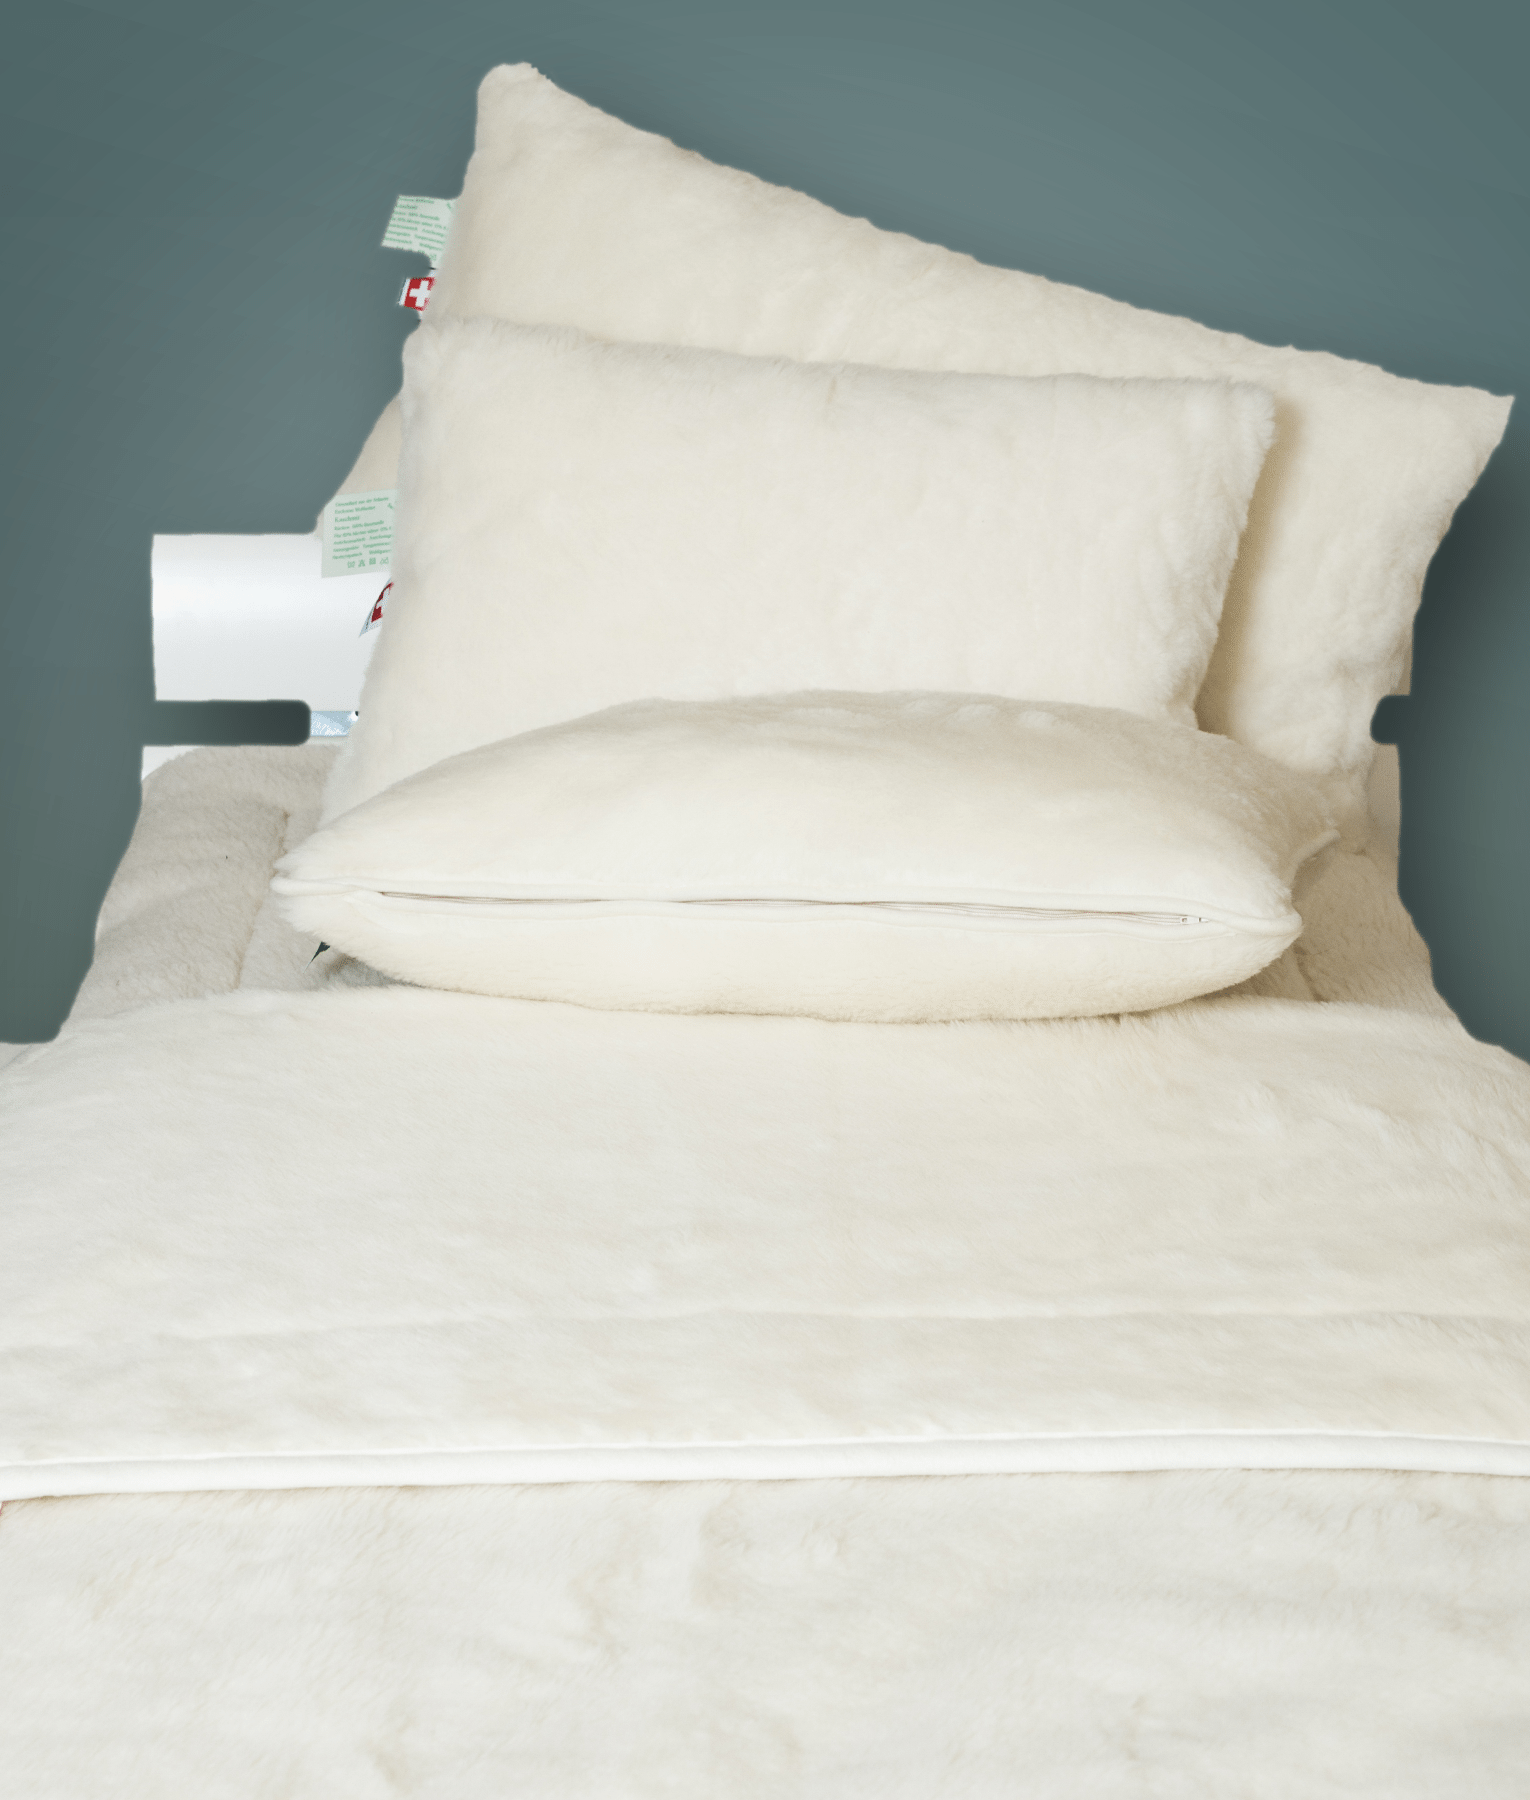 cashmere-mattress-topper-swissmade-direct